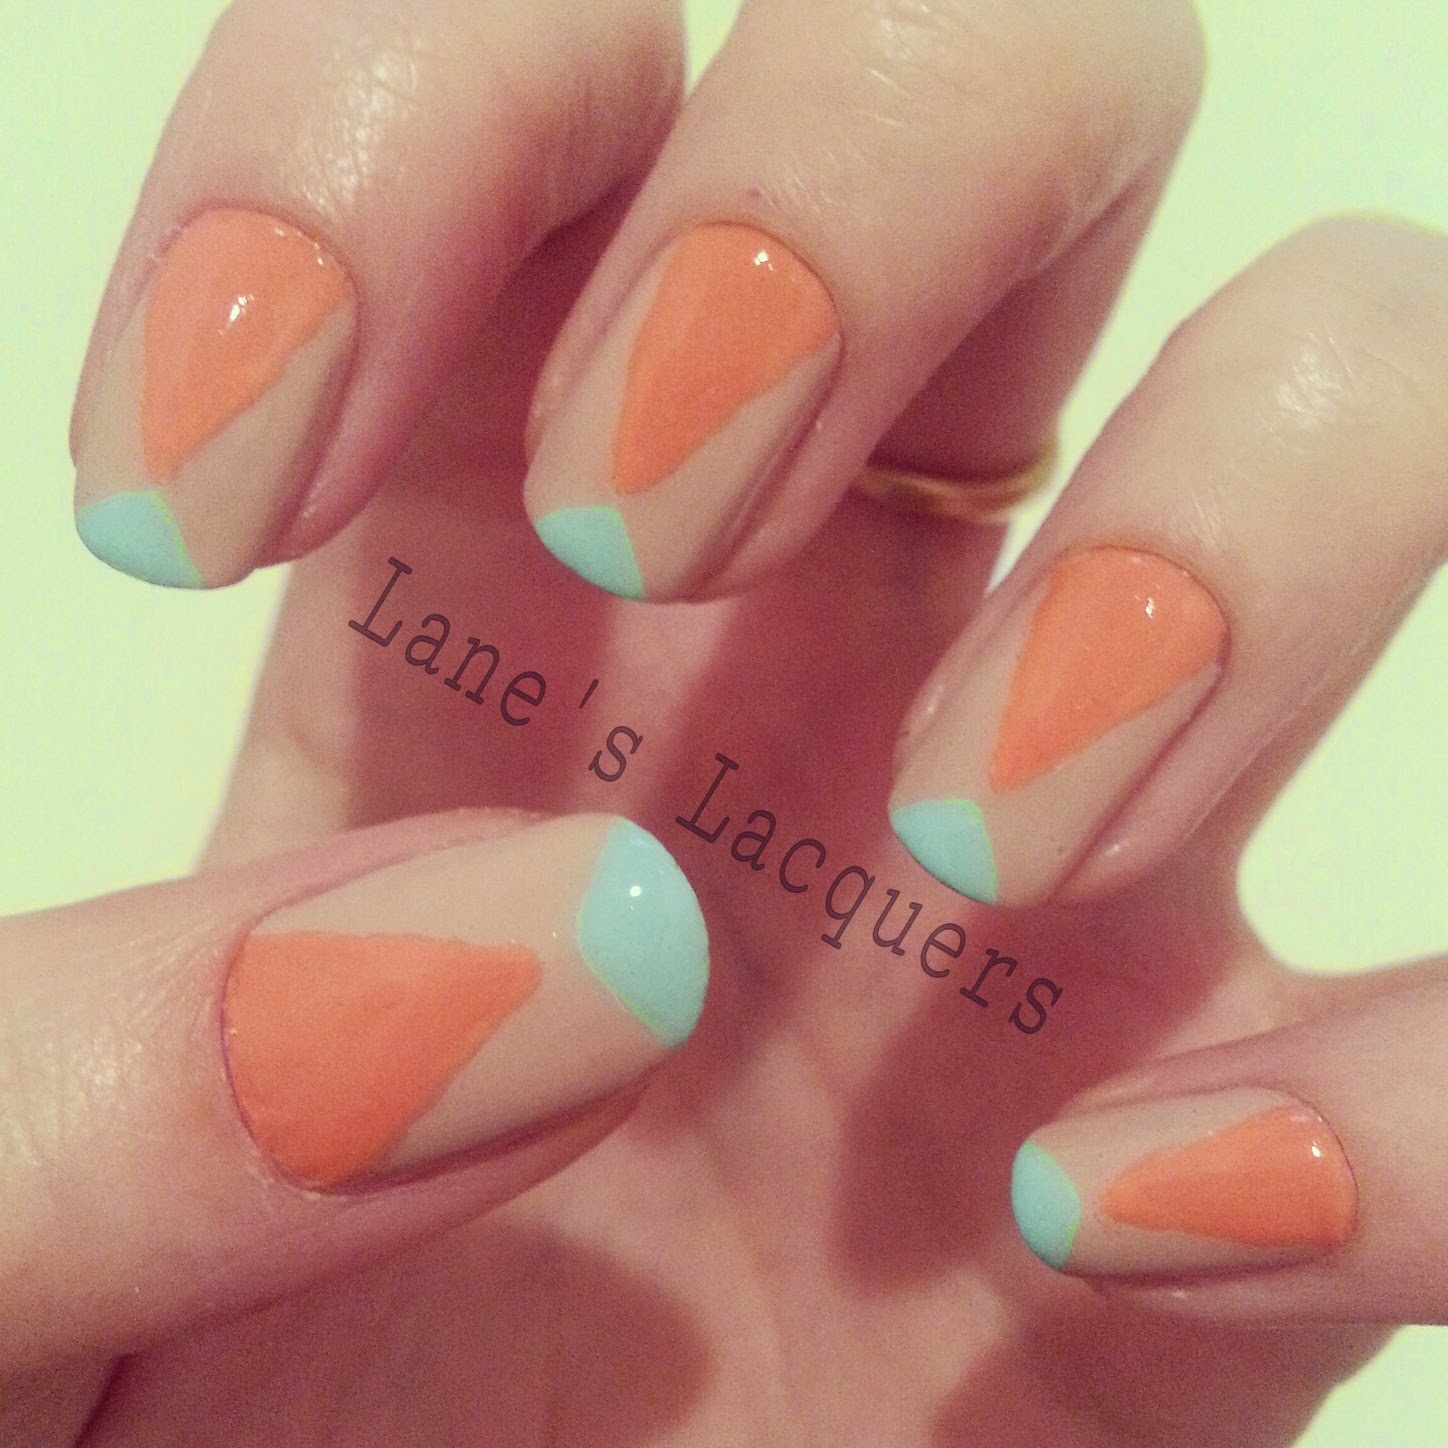 TPC-nude-coral-turquoise-nail-art